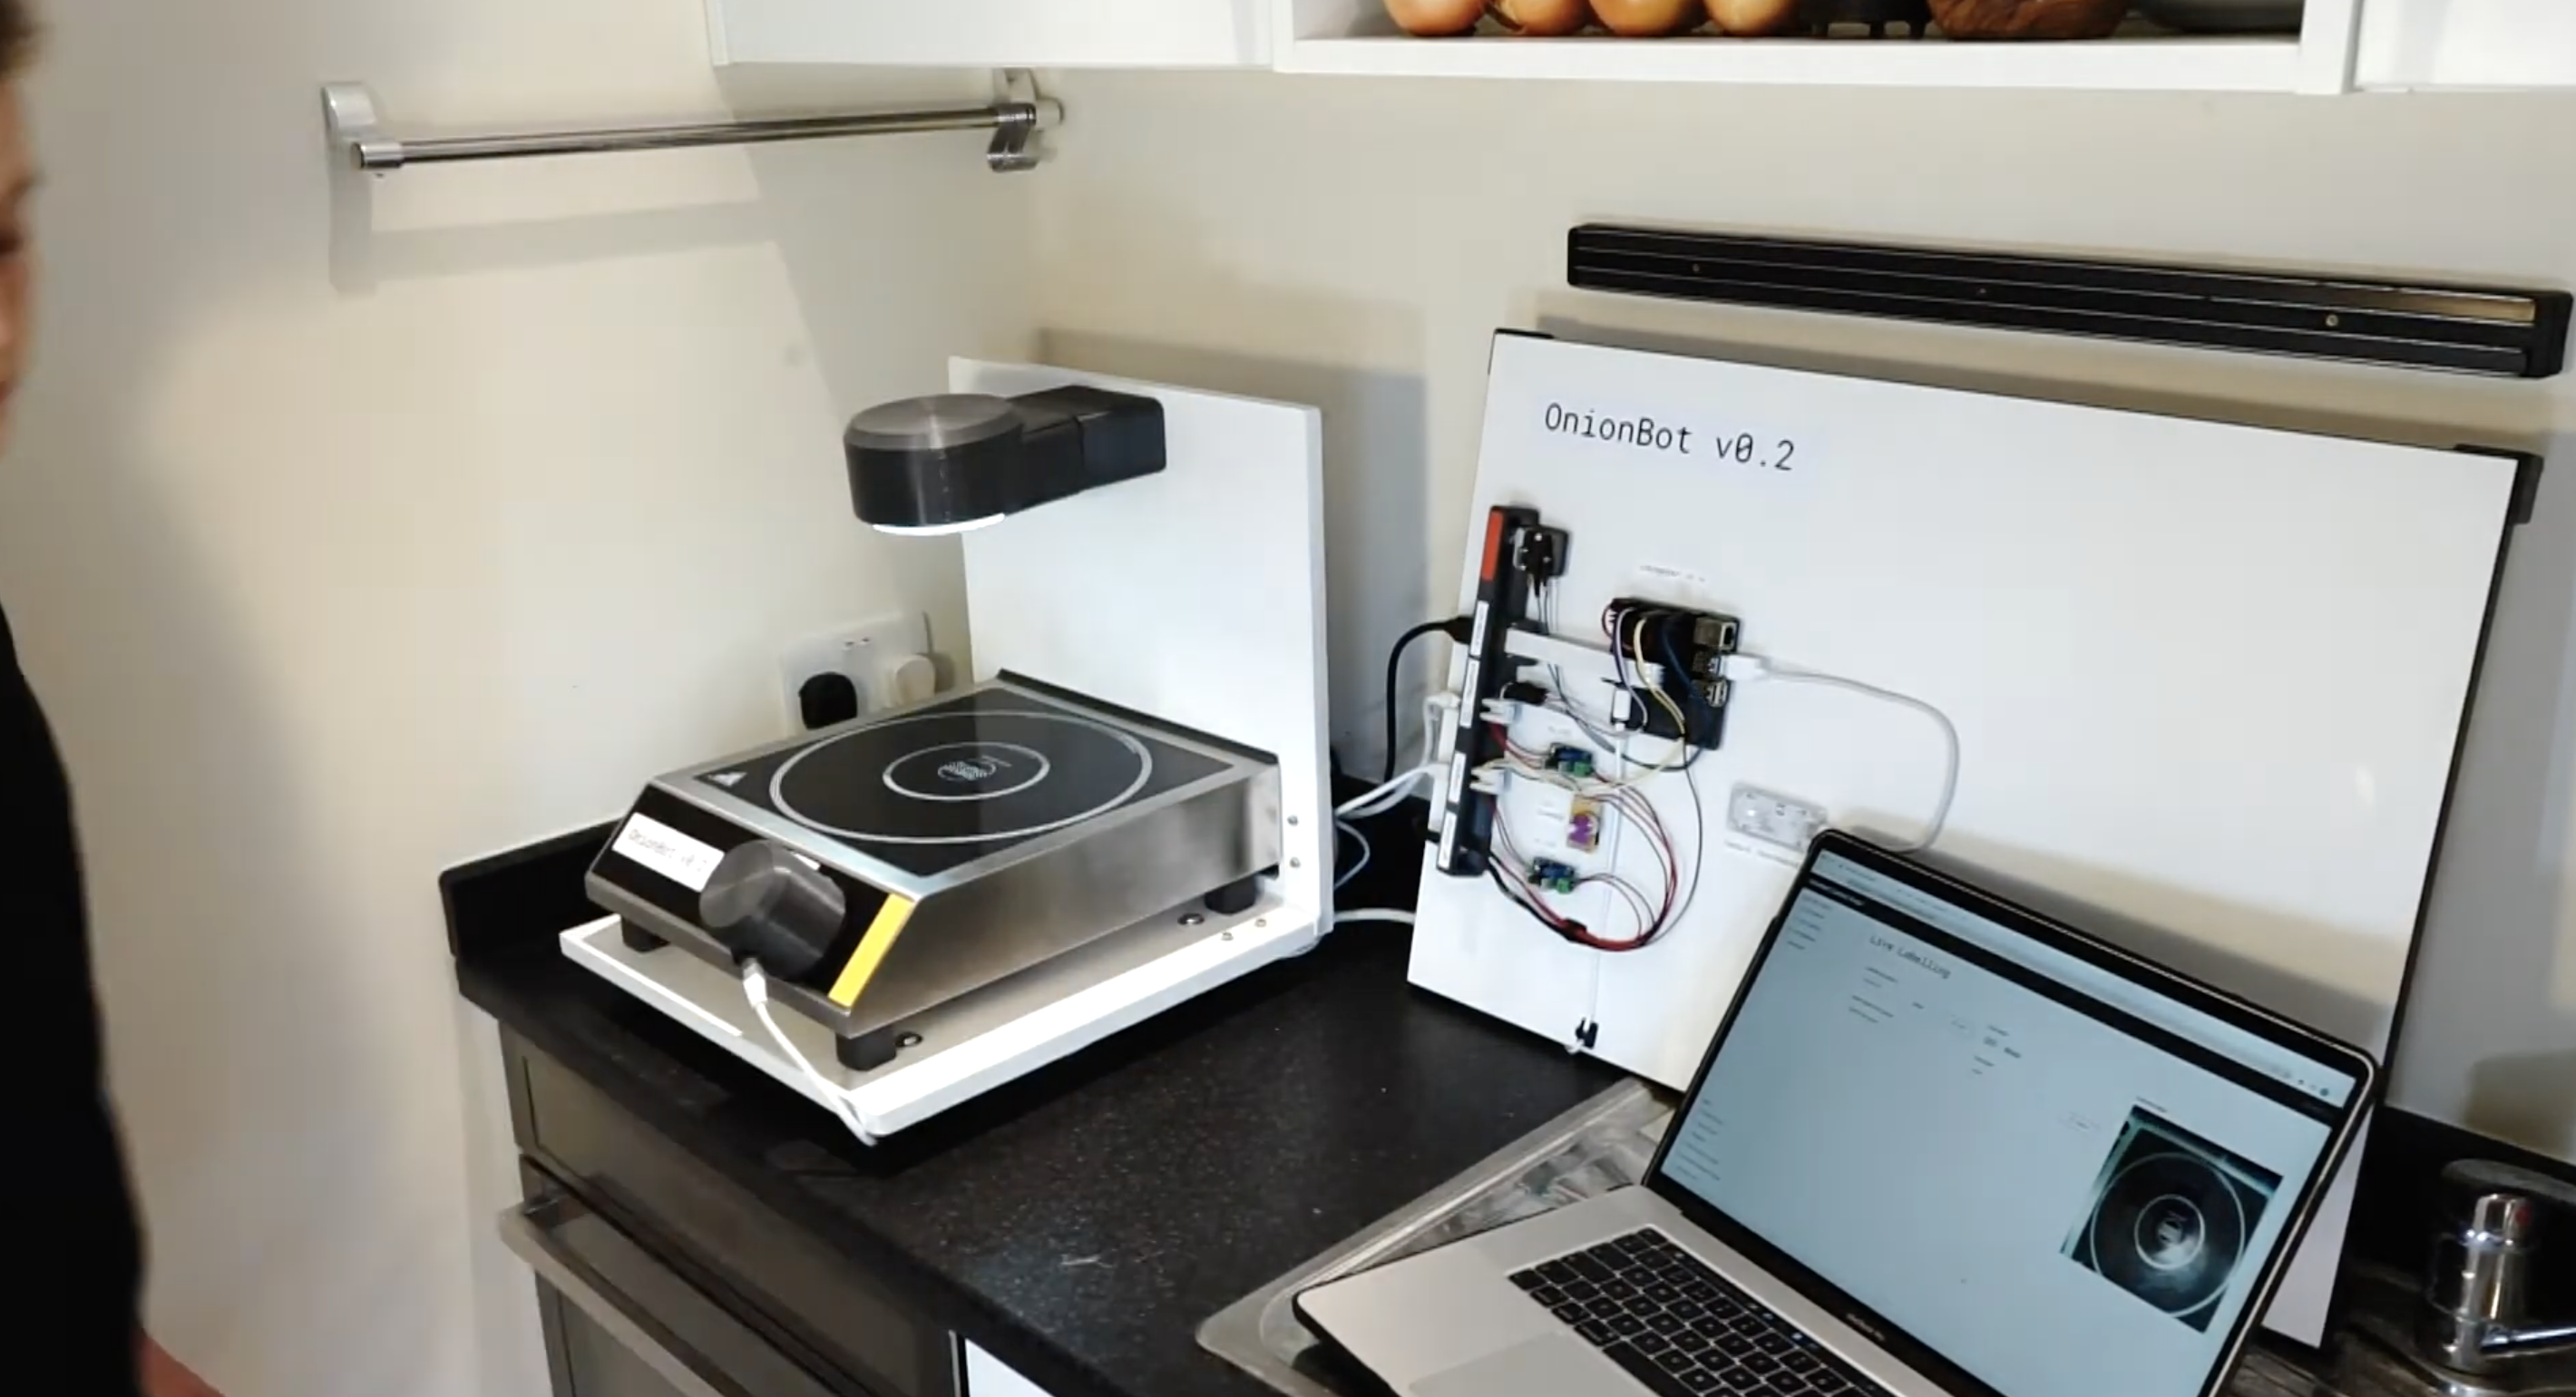 OnionBot robotic sous-chef set up in a kitchen